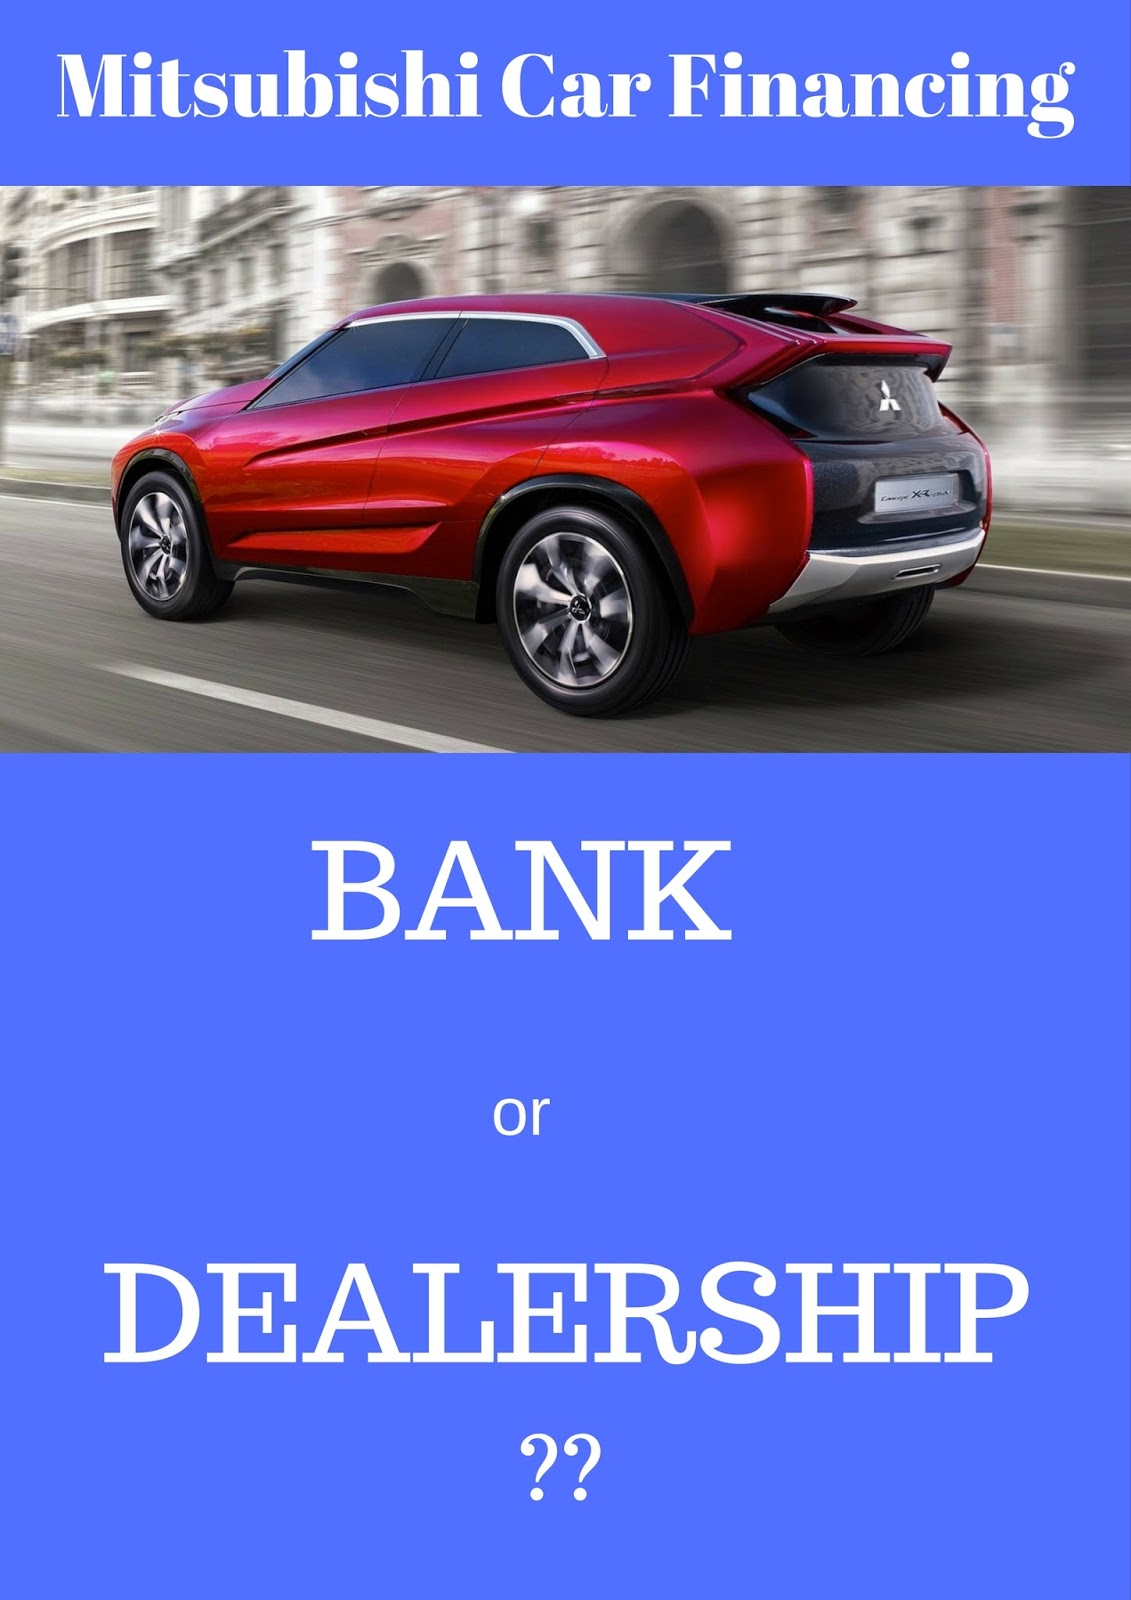 Mitsubishi Car Financing Options Bank Or Dealership